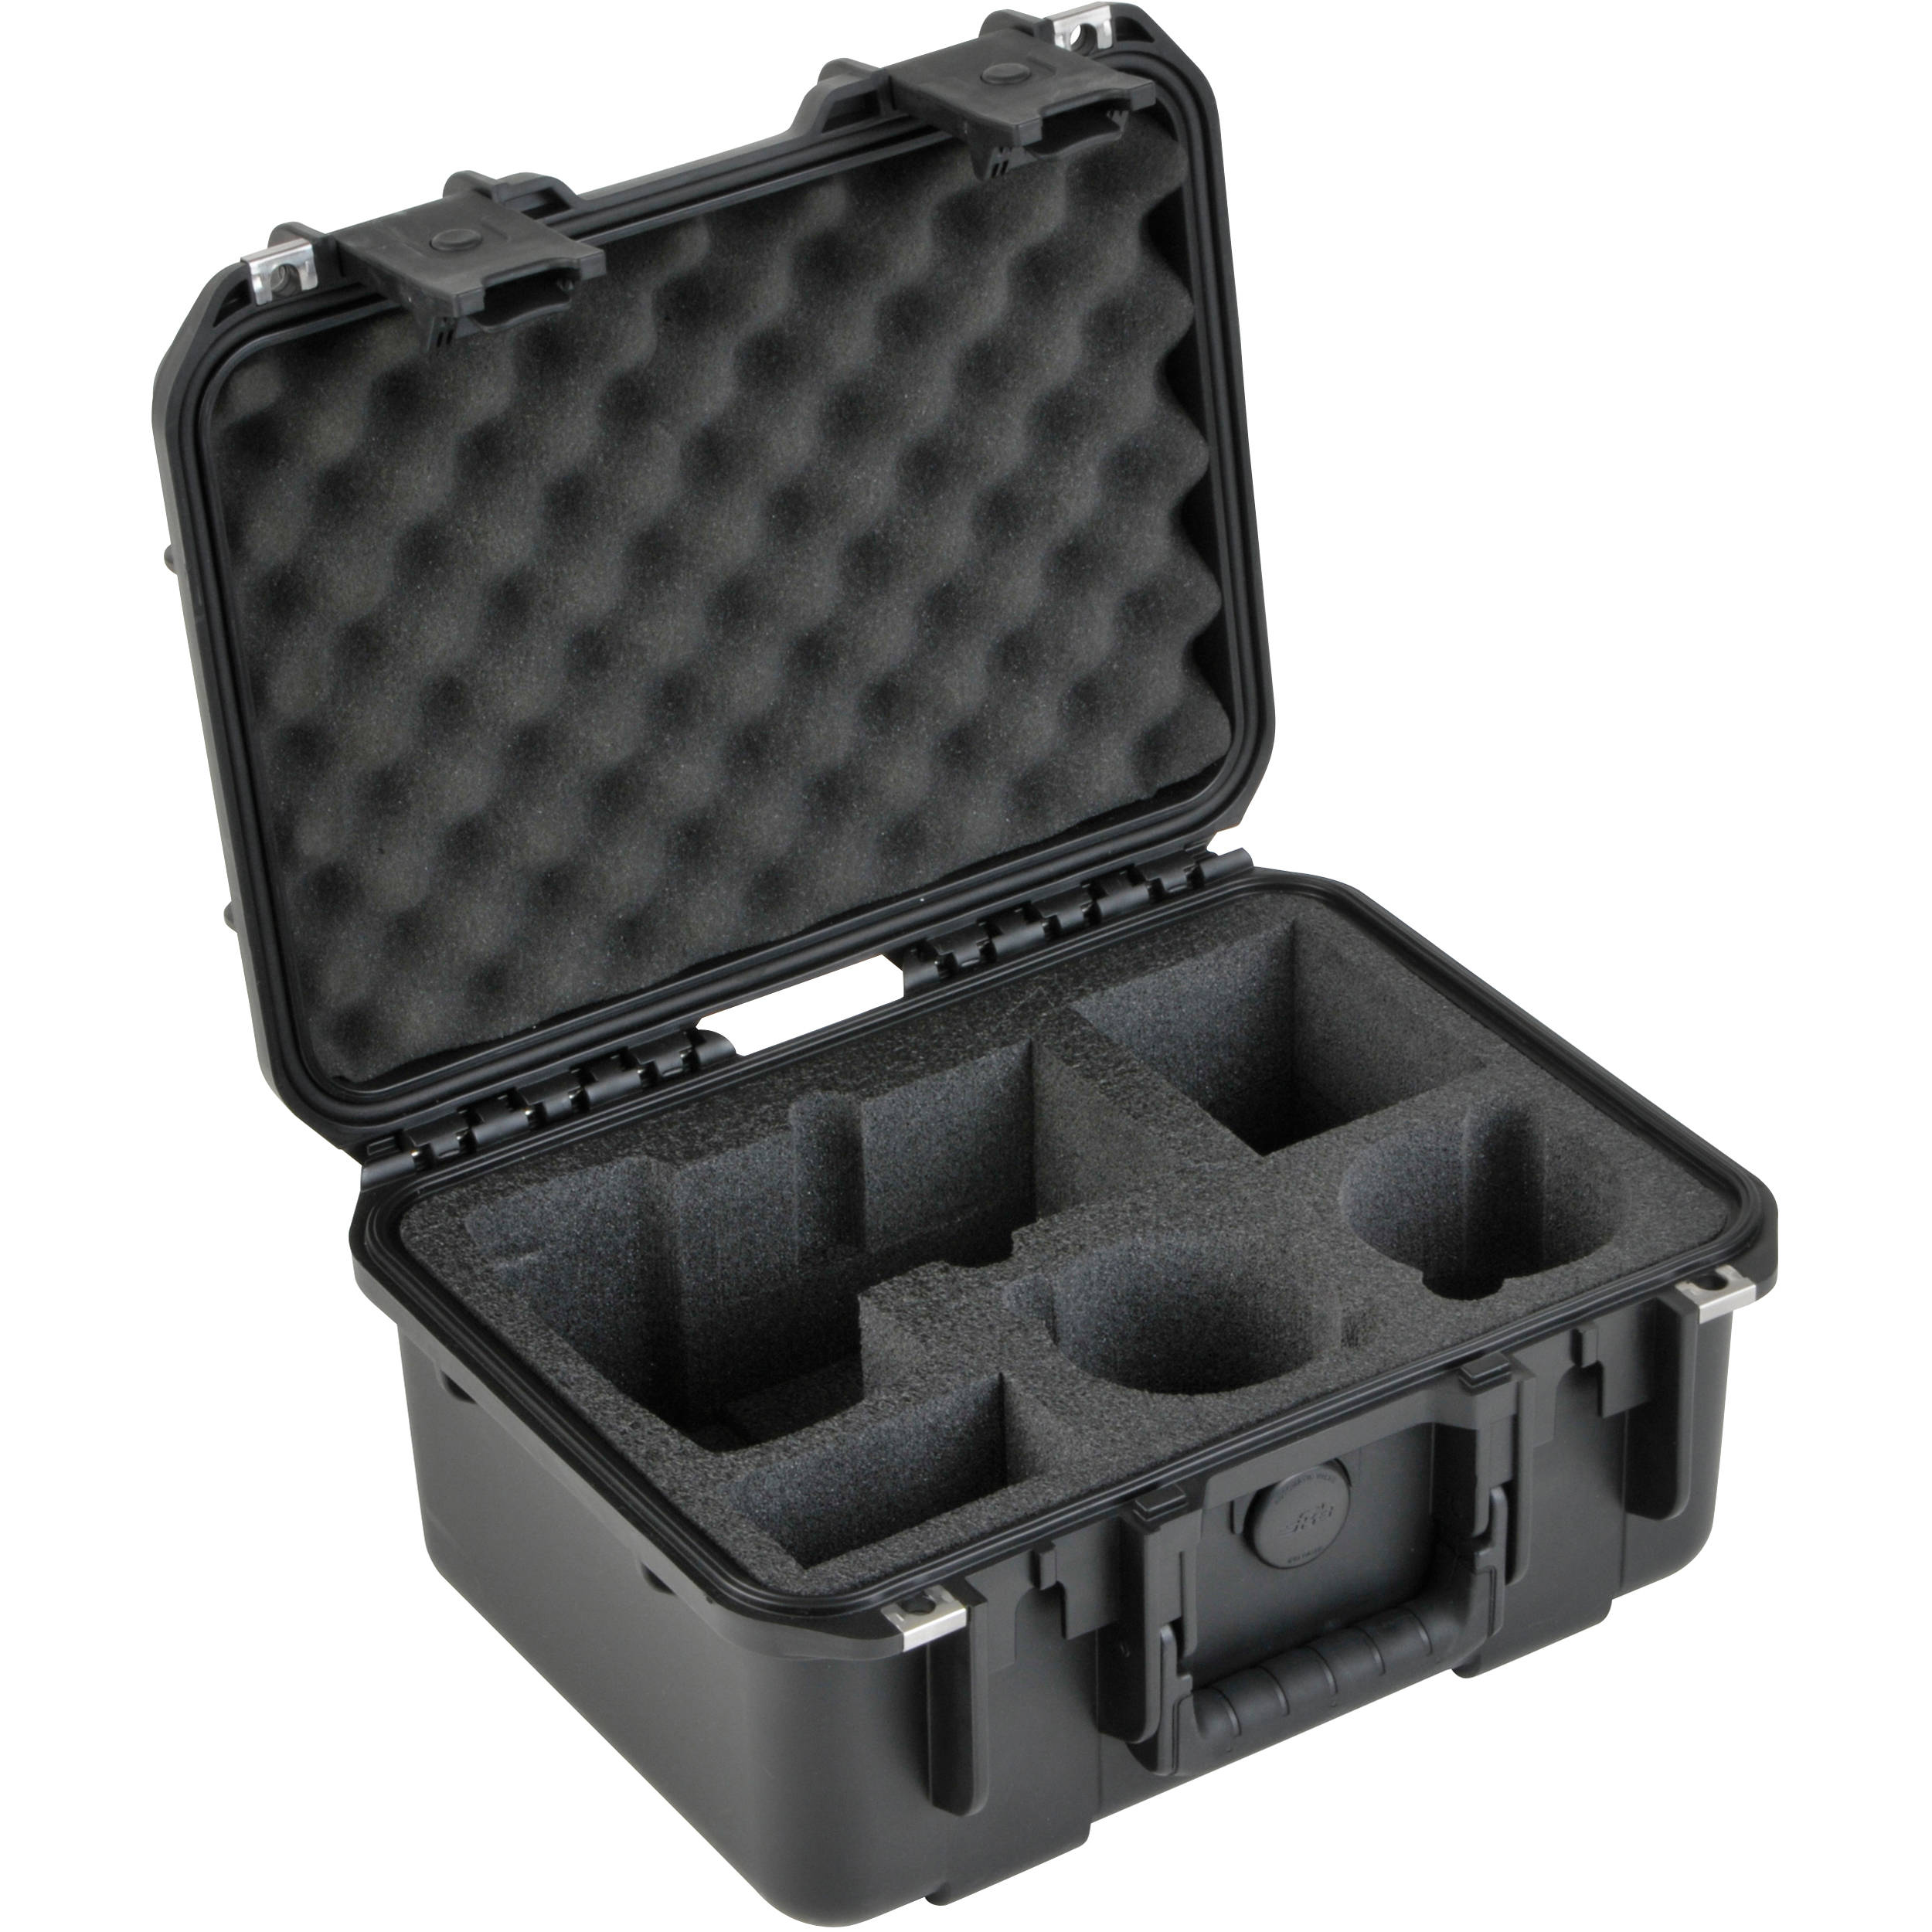 Skb Iseries Dslr Pro Camera Case I Black